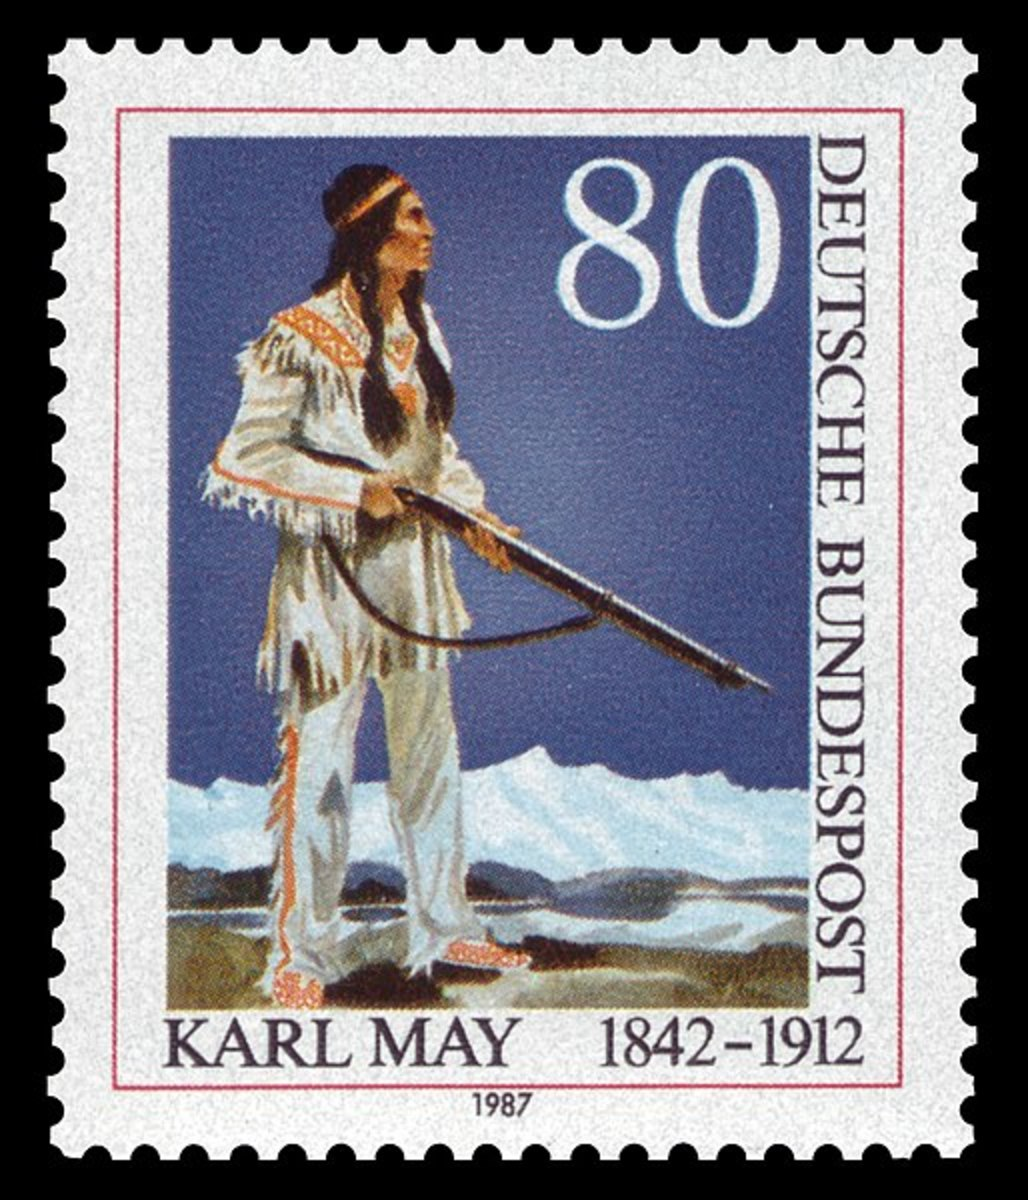 Winnetou makes it onto a German postage stamp.